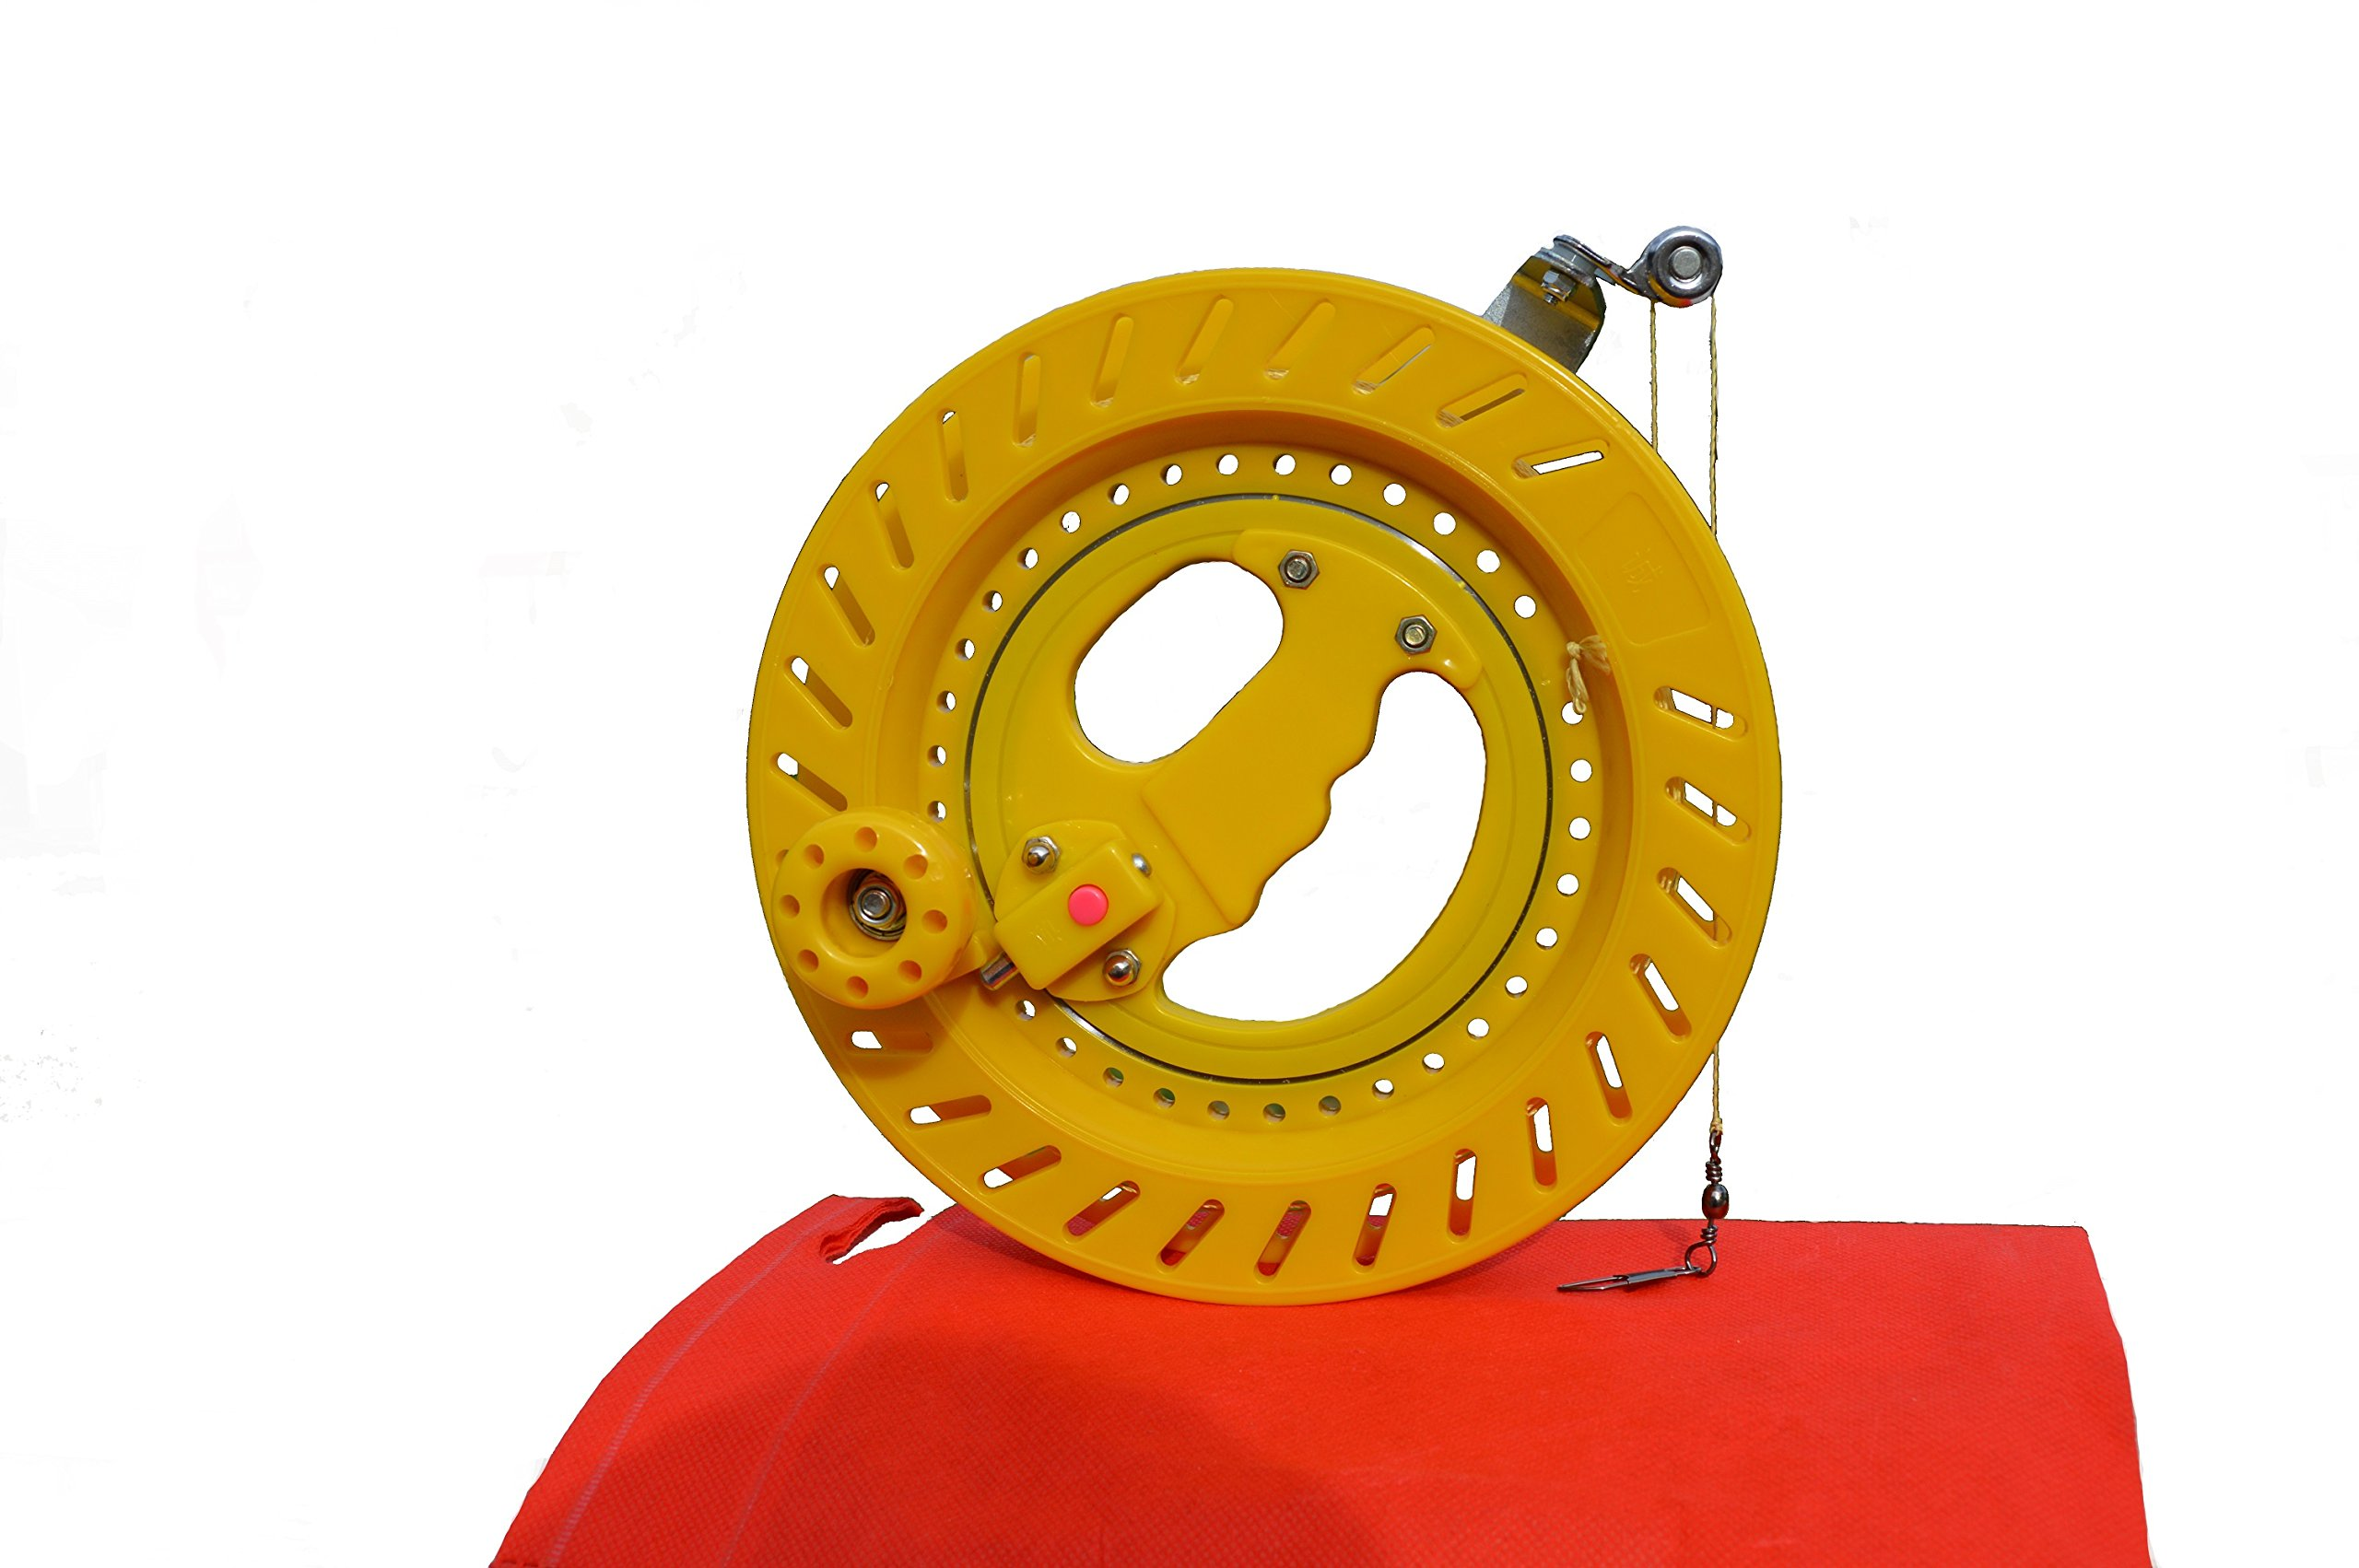 Professional Reel Winder with Strong Kevlar Line 9 inch Diameter with 1,000 FT Line